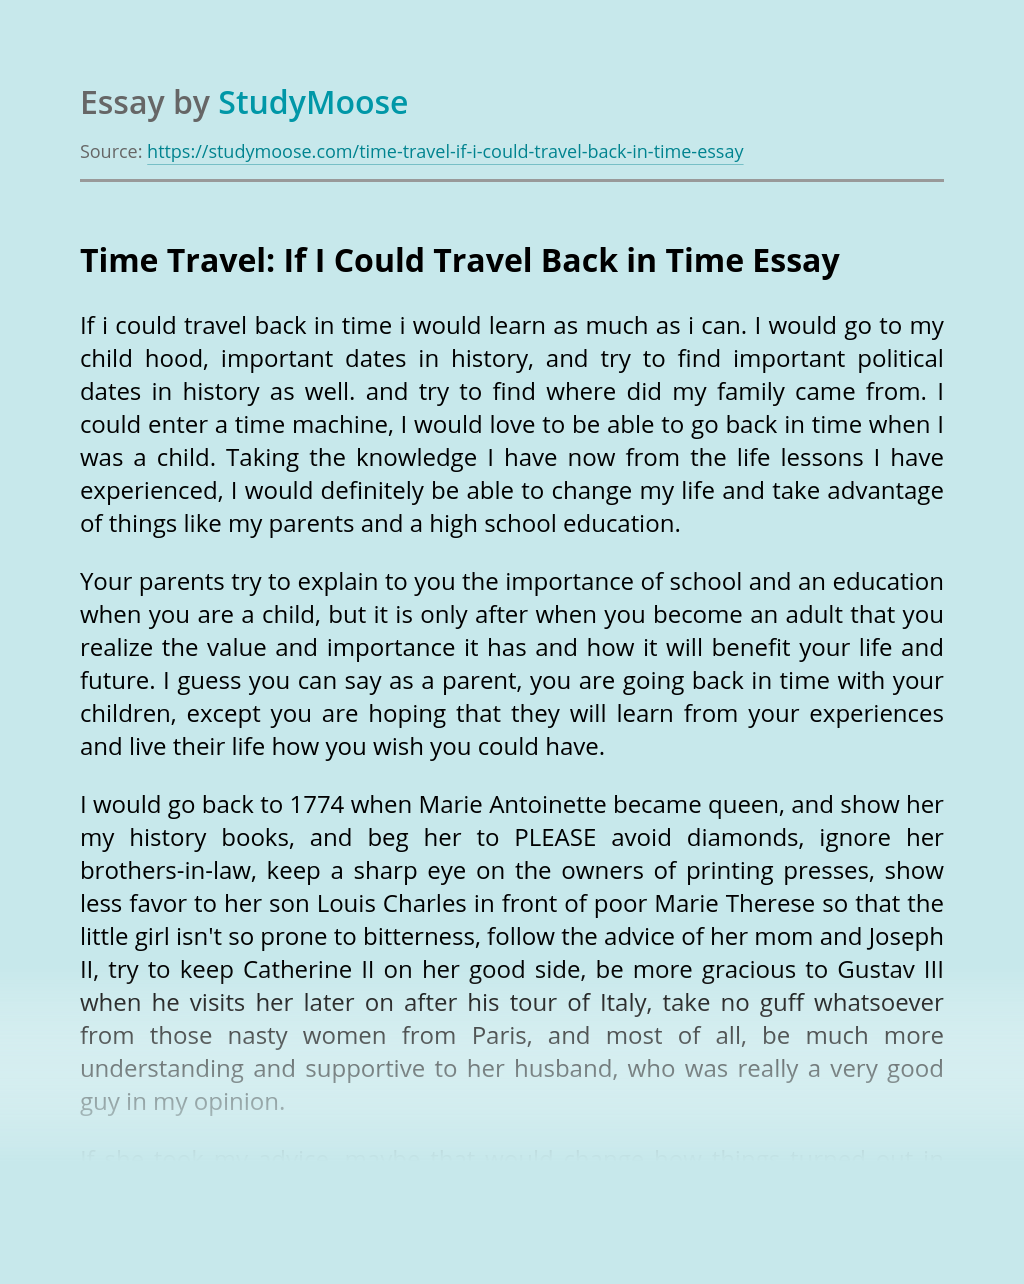 Time Travel: If I Could Travel Back in Time